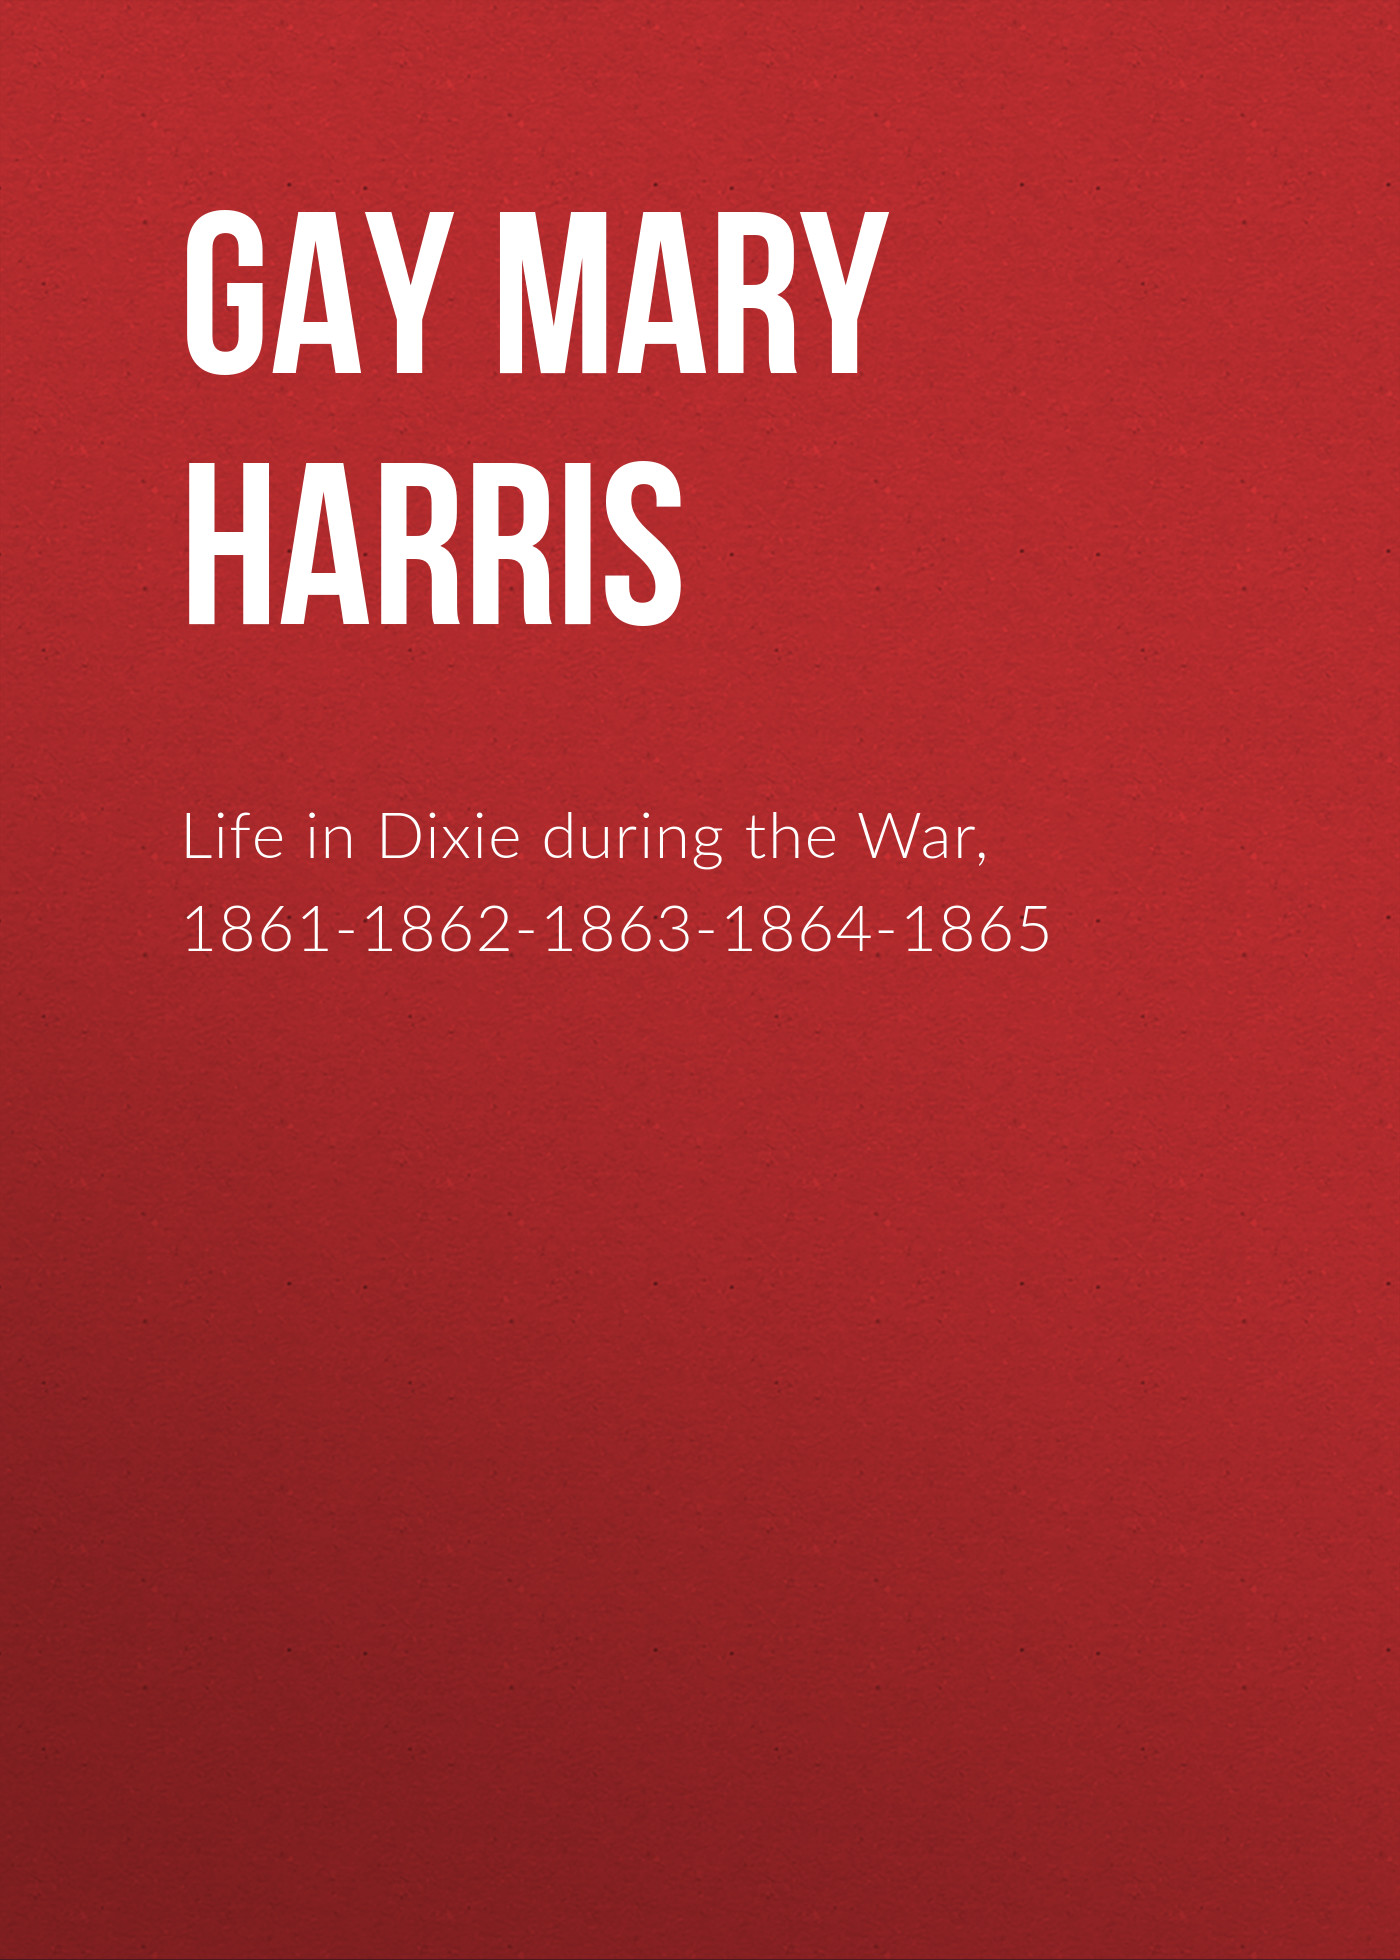 Gay Mary Ann Harris Life in Dixie during the War, 1861-1862-1863-1864-1865